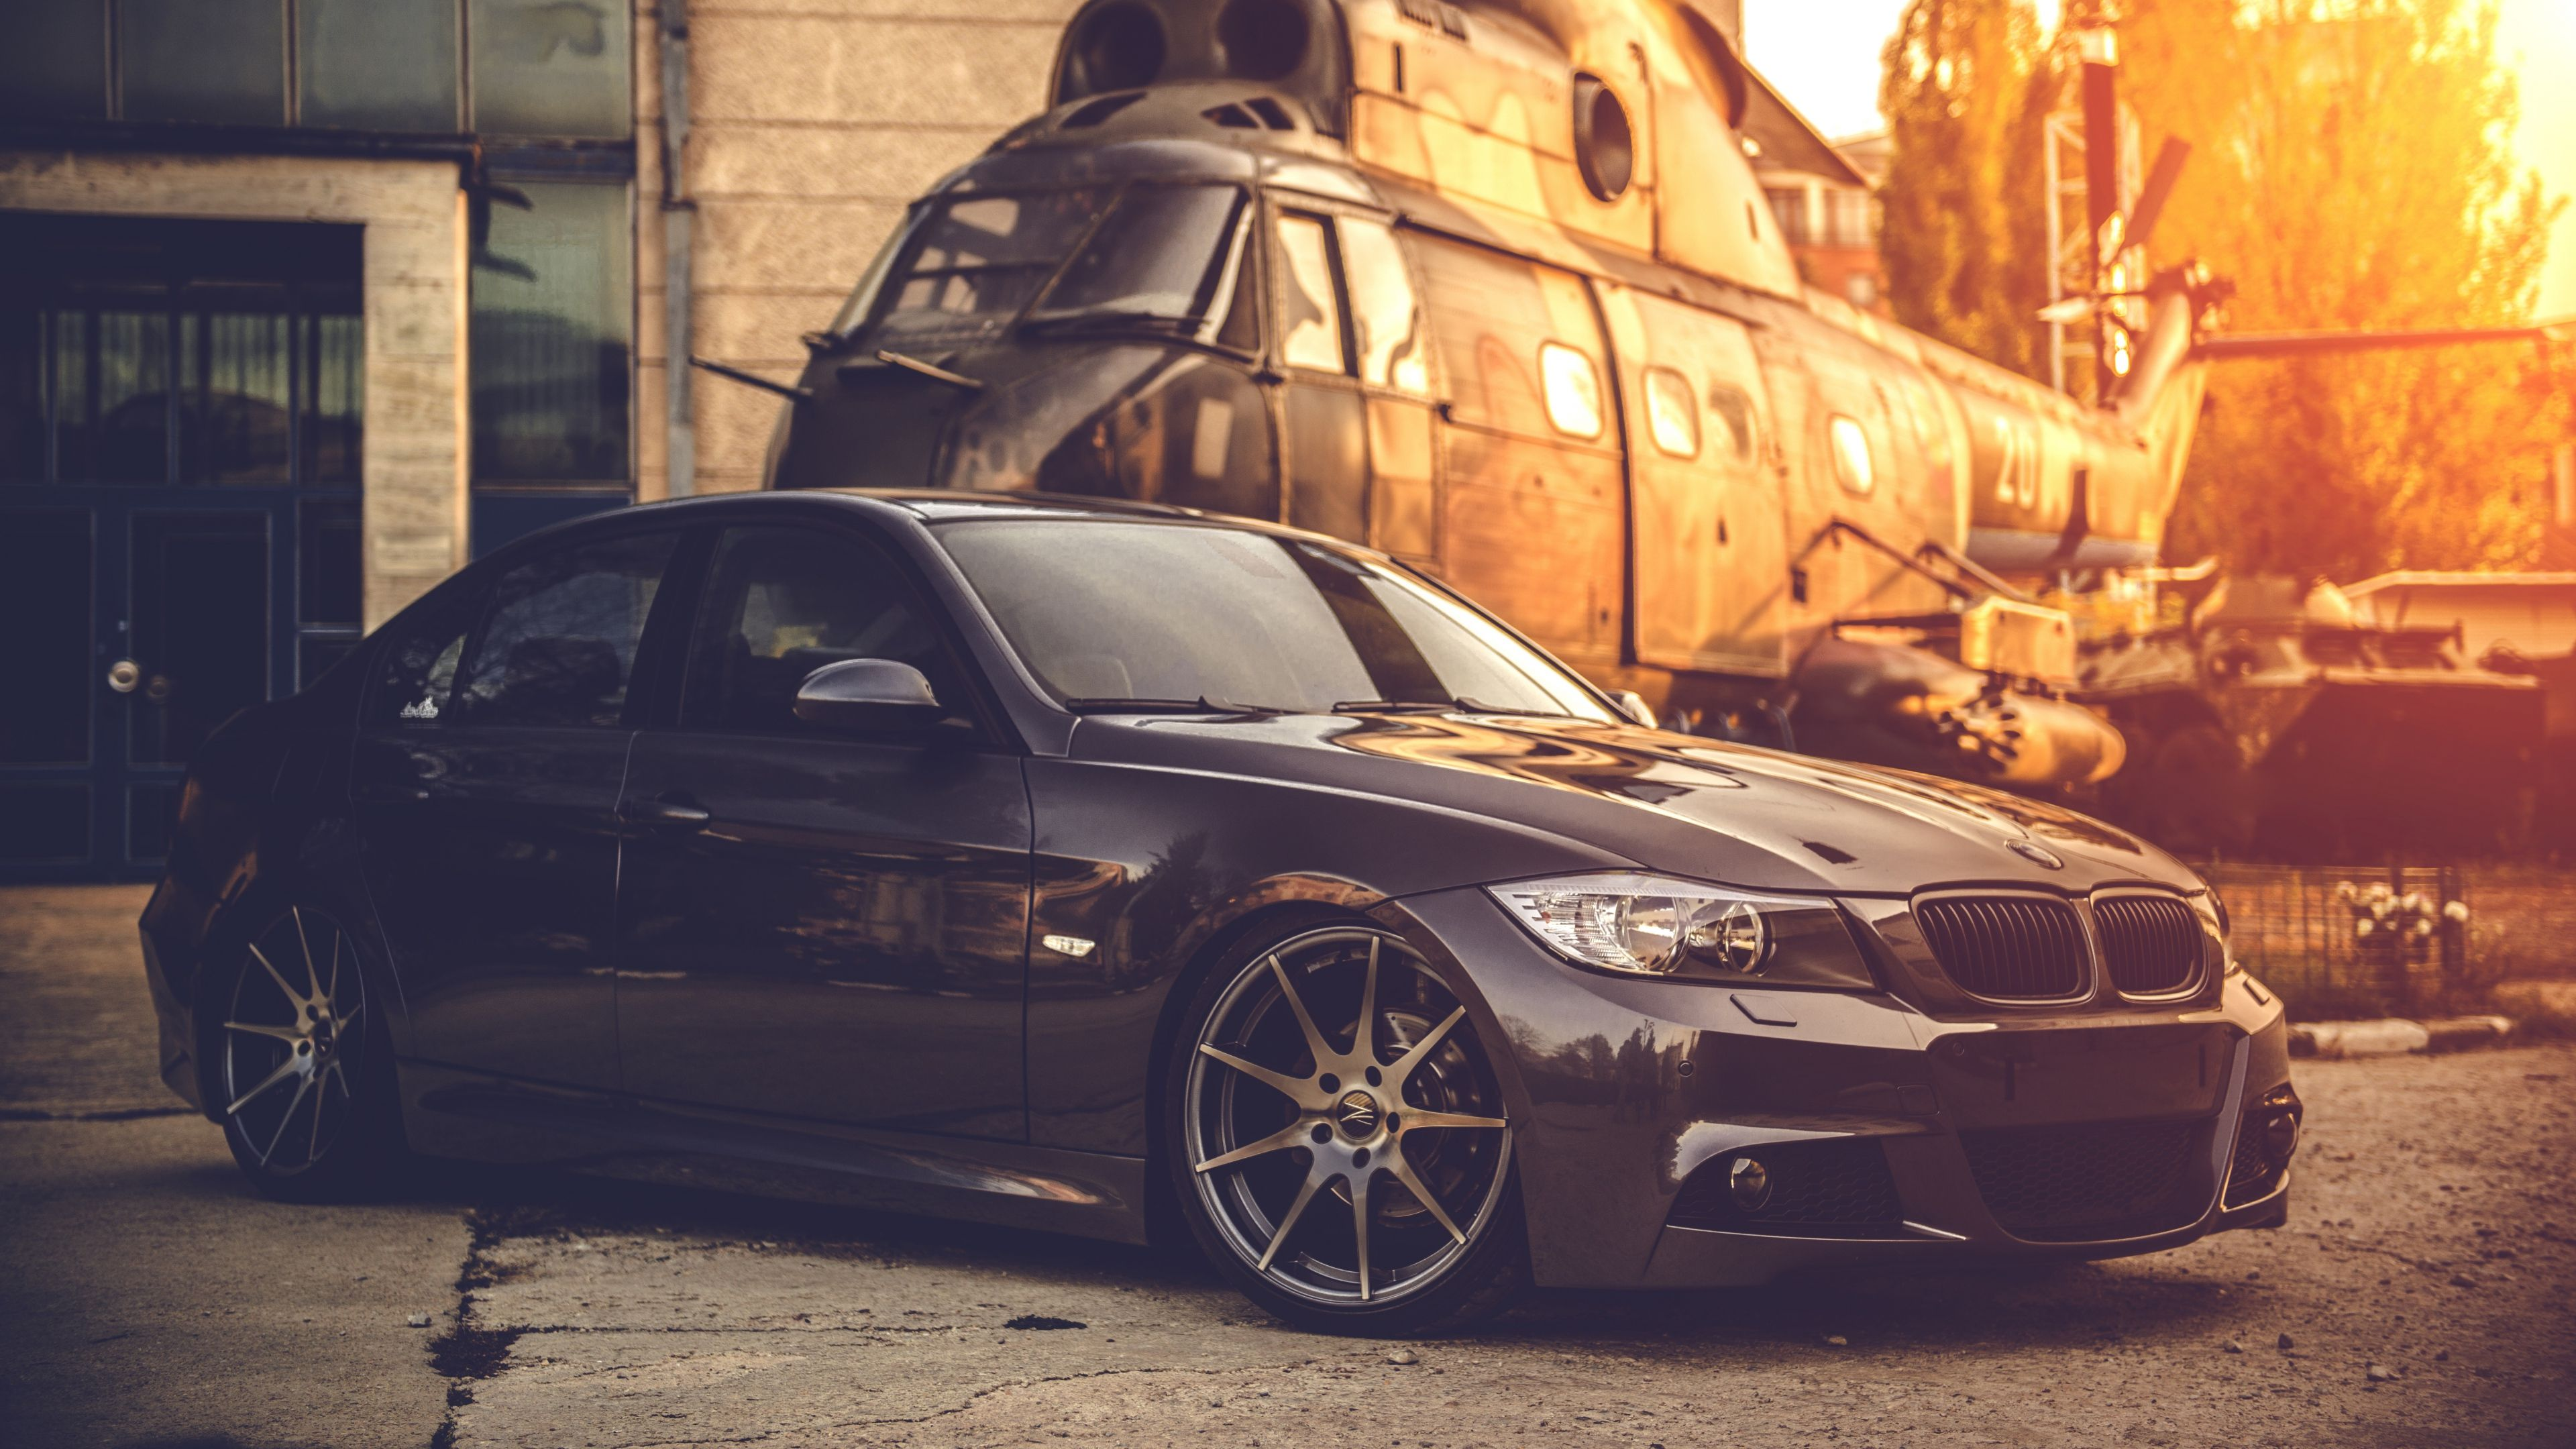 Bmw Car Black 4k Ultra Hd Wallpaper Bmw Wallpapers Car Wallpapers Bmw